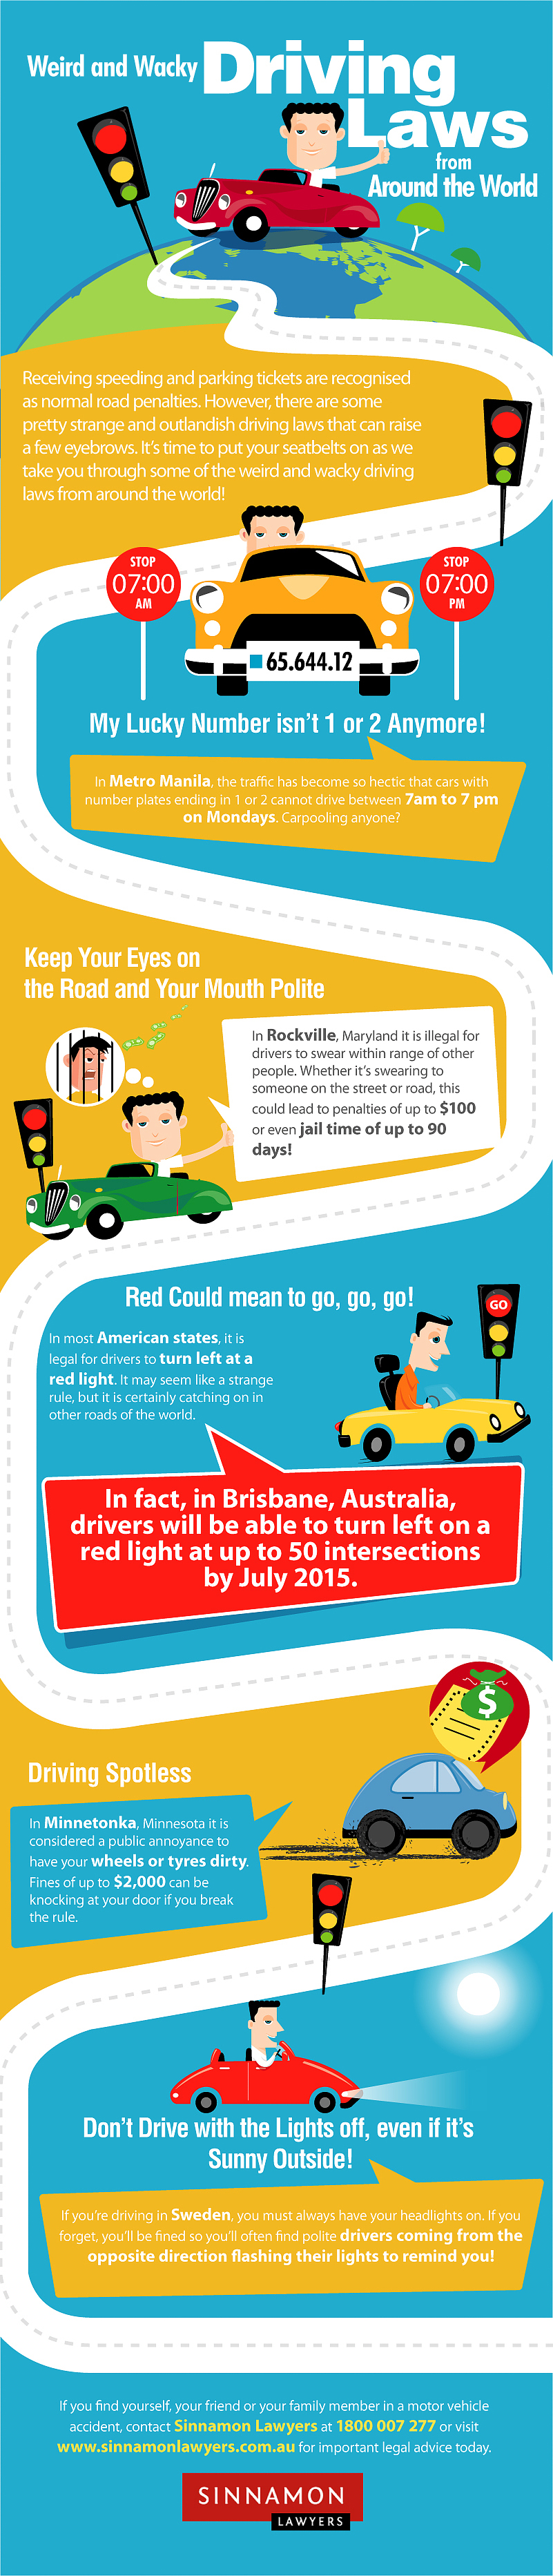 Weird and Wacky Road Rules From Around the World